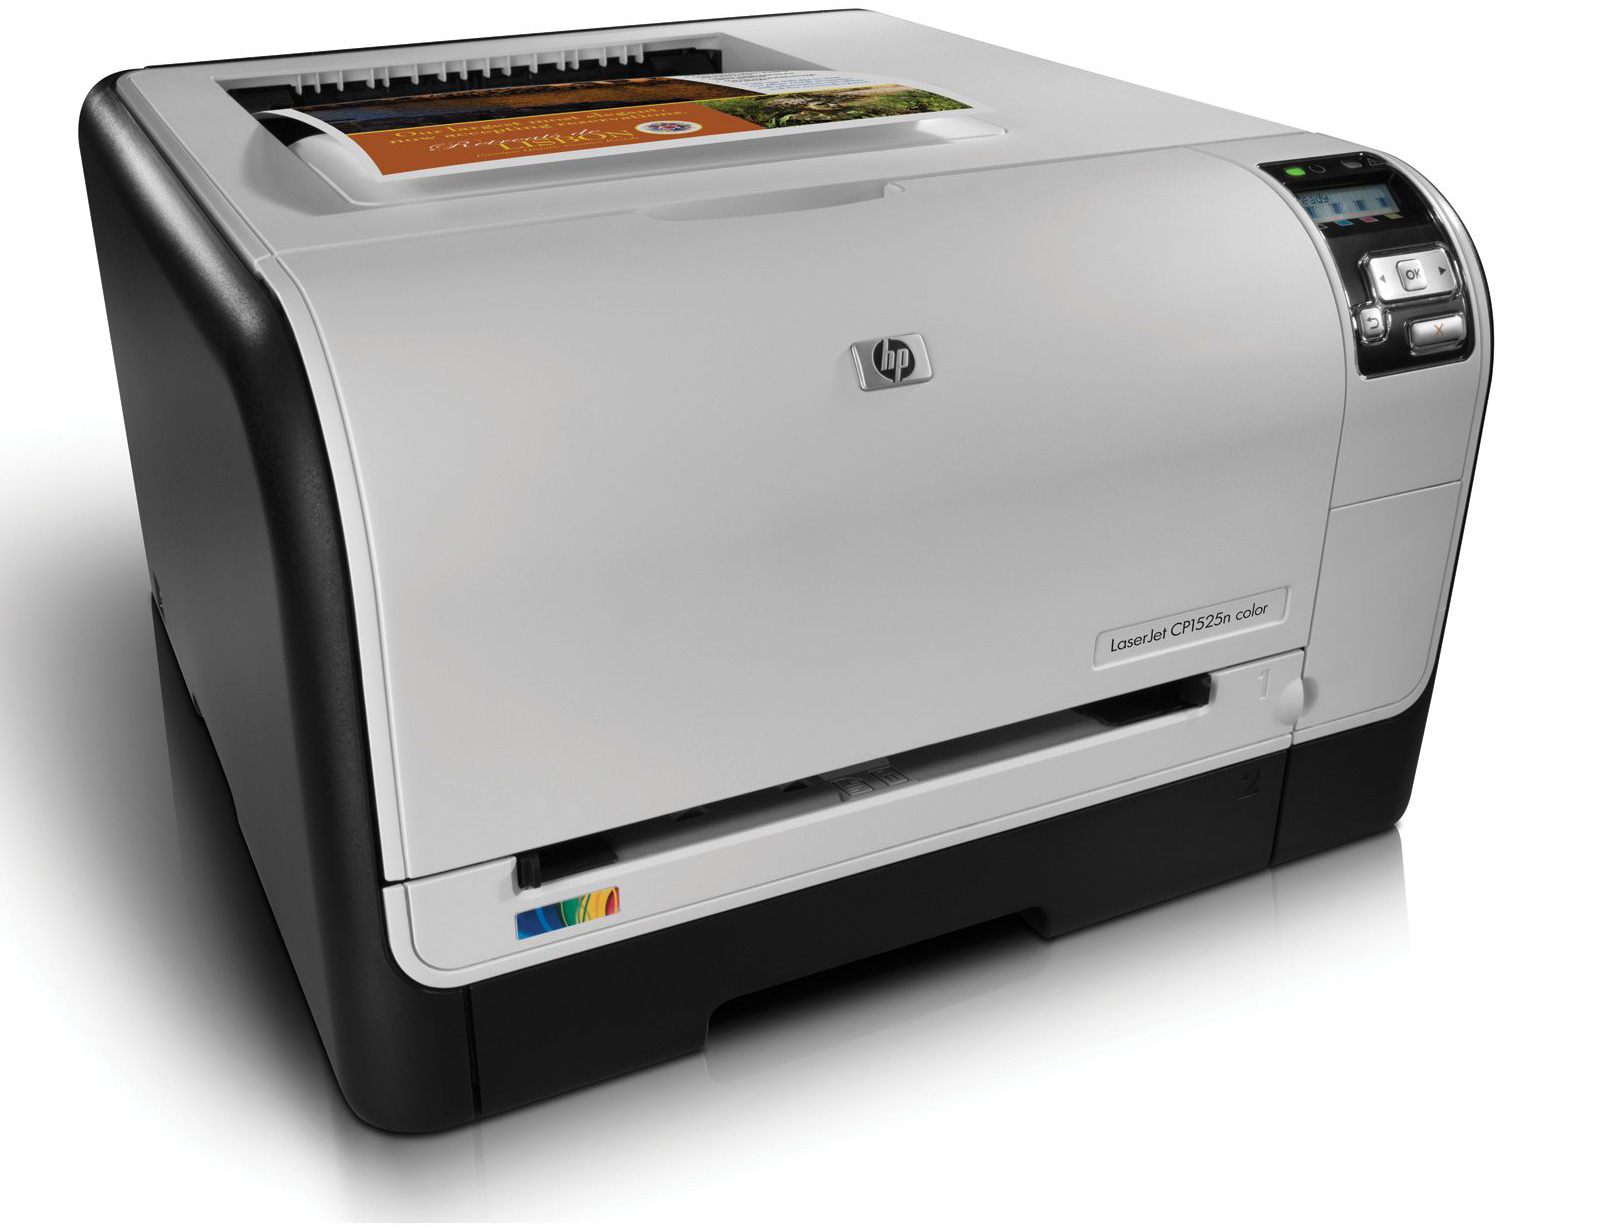 software & driver downloads - hp laserjet pro p1102 printer